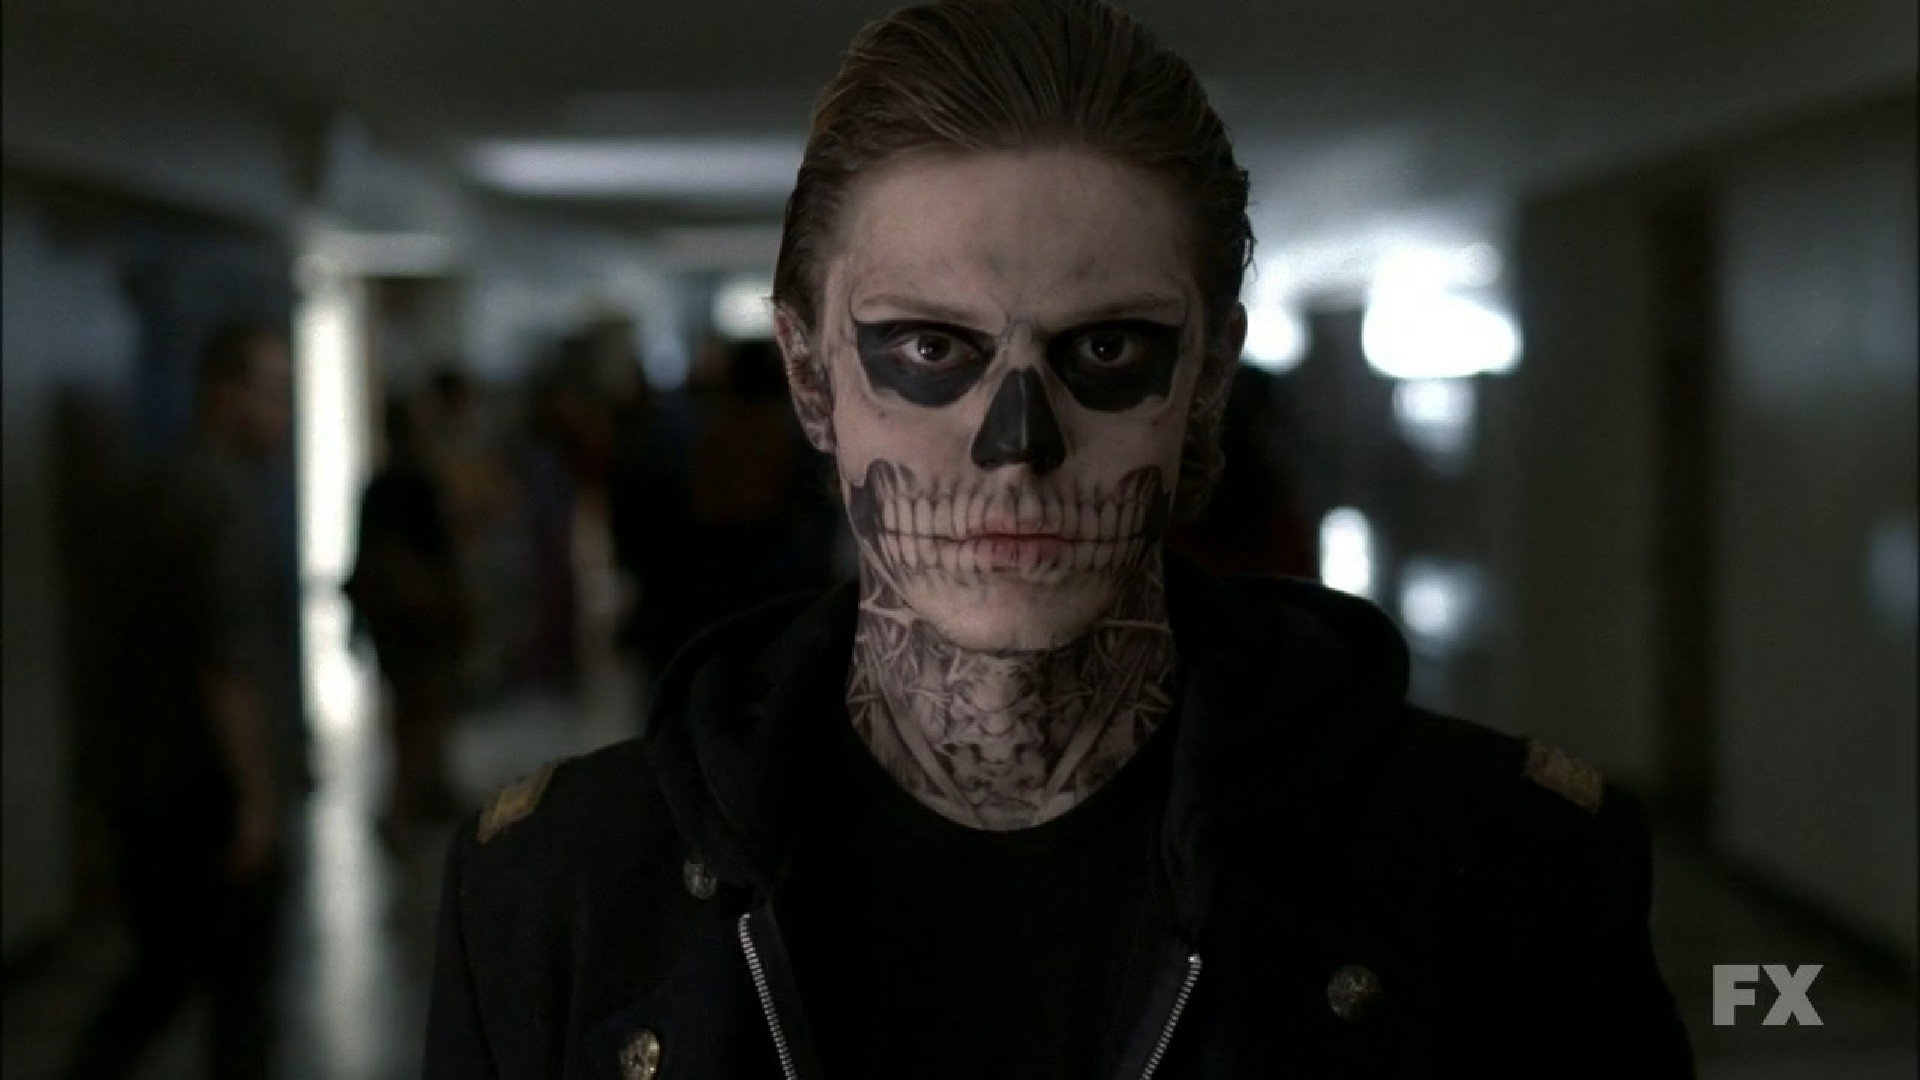 american horror story wallpapers hd for desktop backgrounds